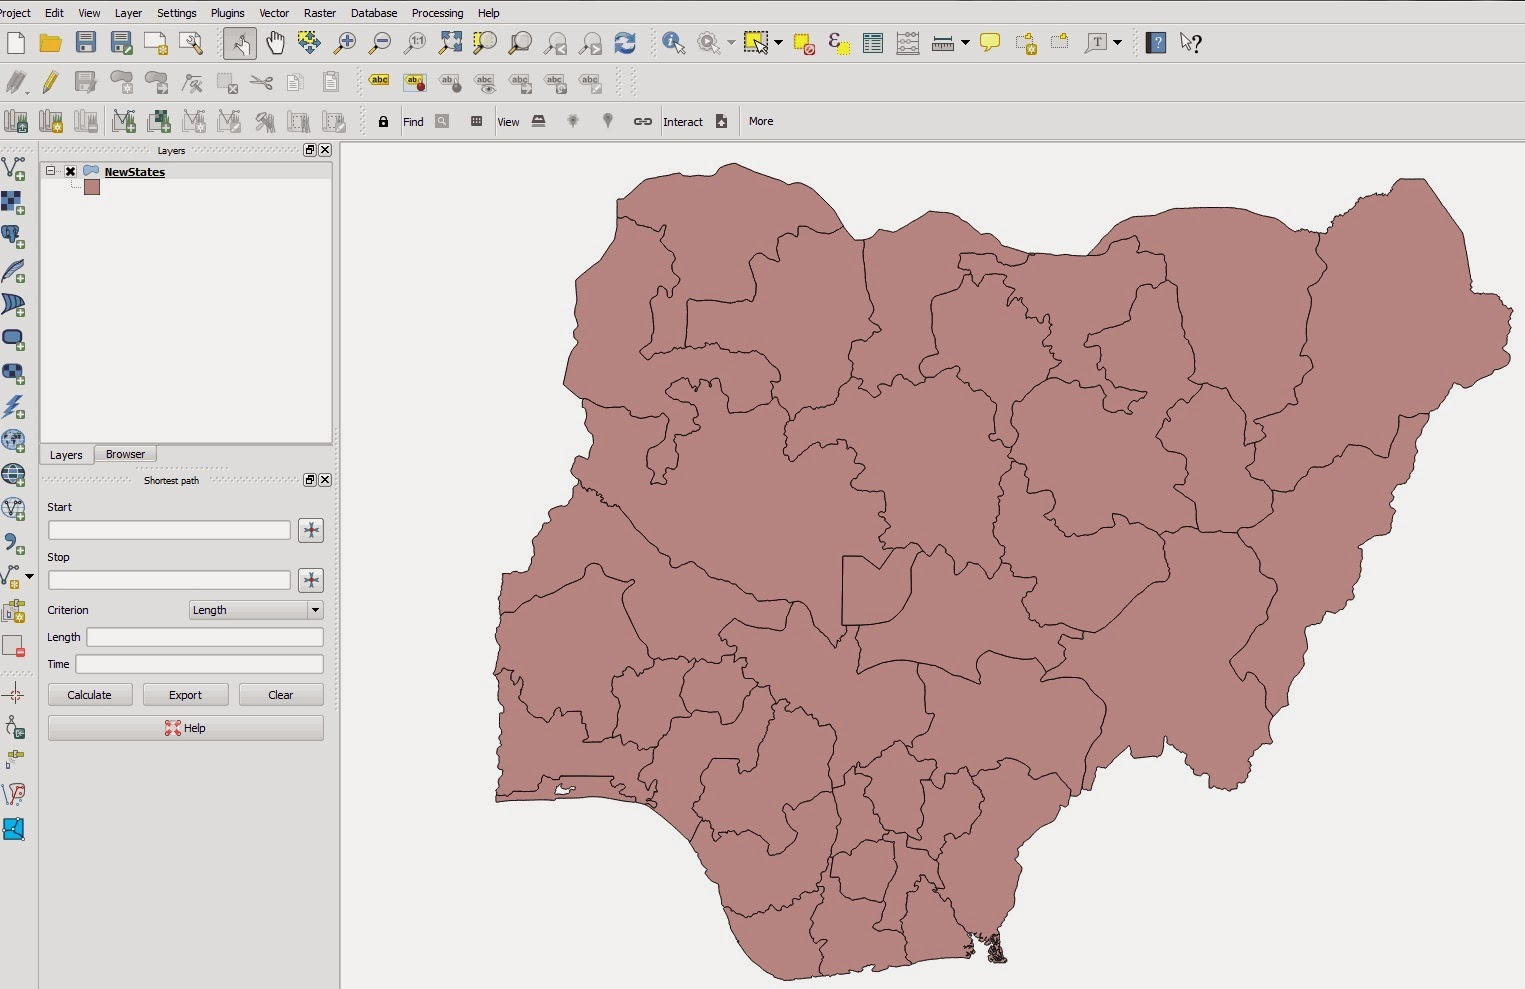 How to download free gis street map of nigeria from openstreetmap at this stage you need to install the openlayers plugin which allows you connect to the osm server and download the vector data gumiabroncs Gallery